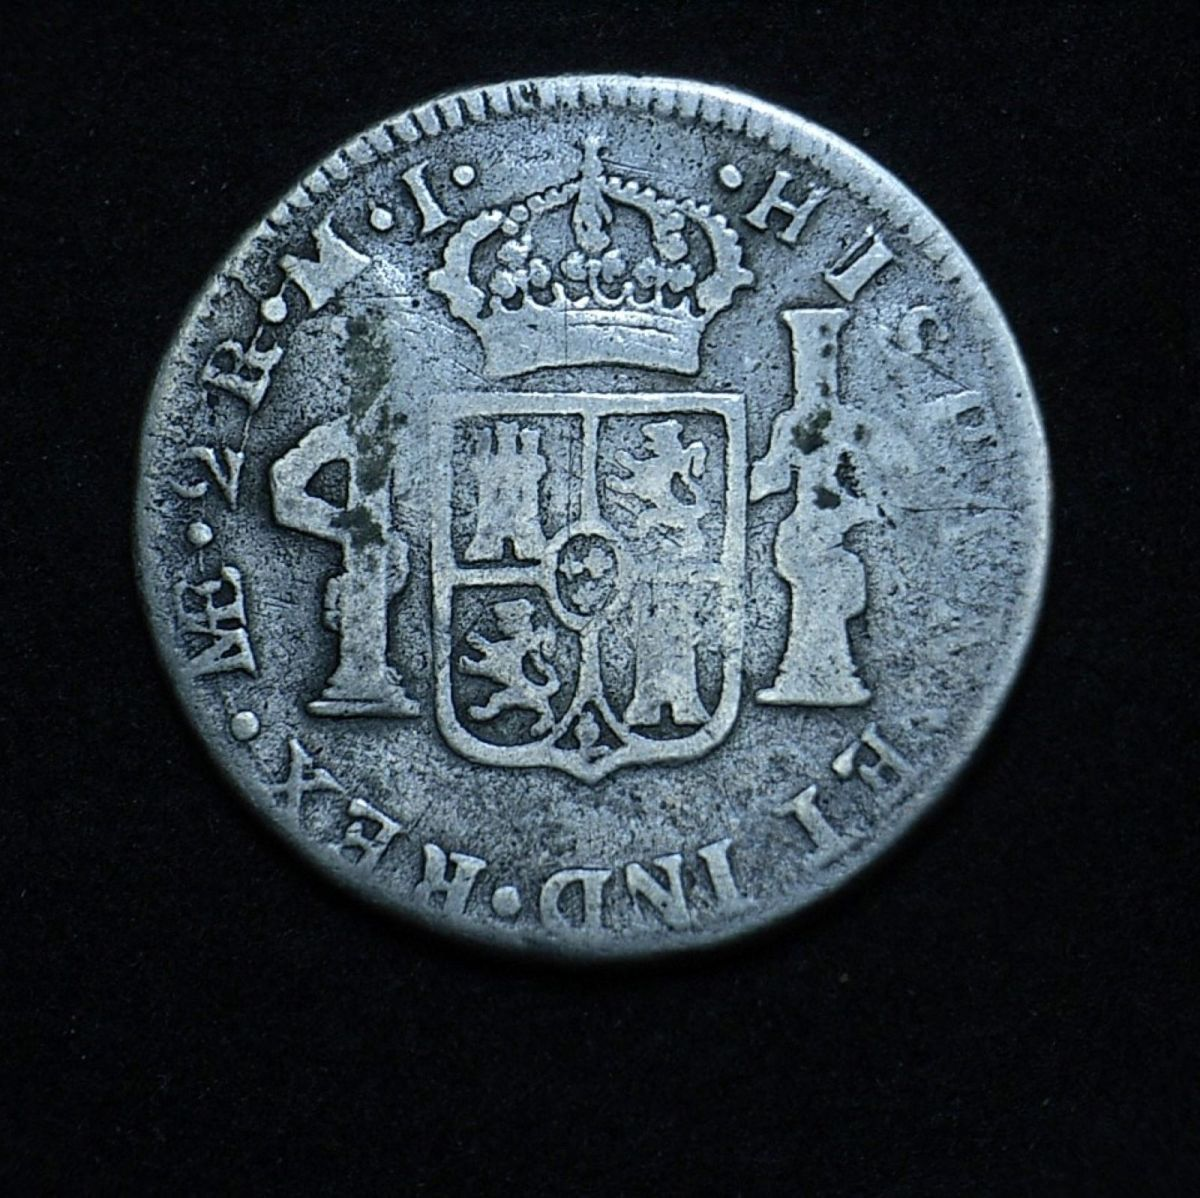 1784 colonial Spanish (Lima) 2 reales reverse